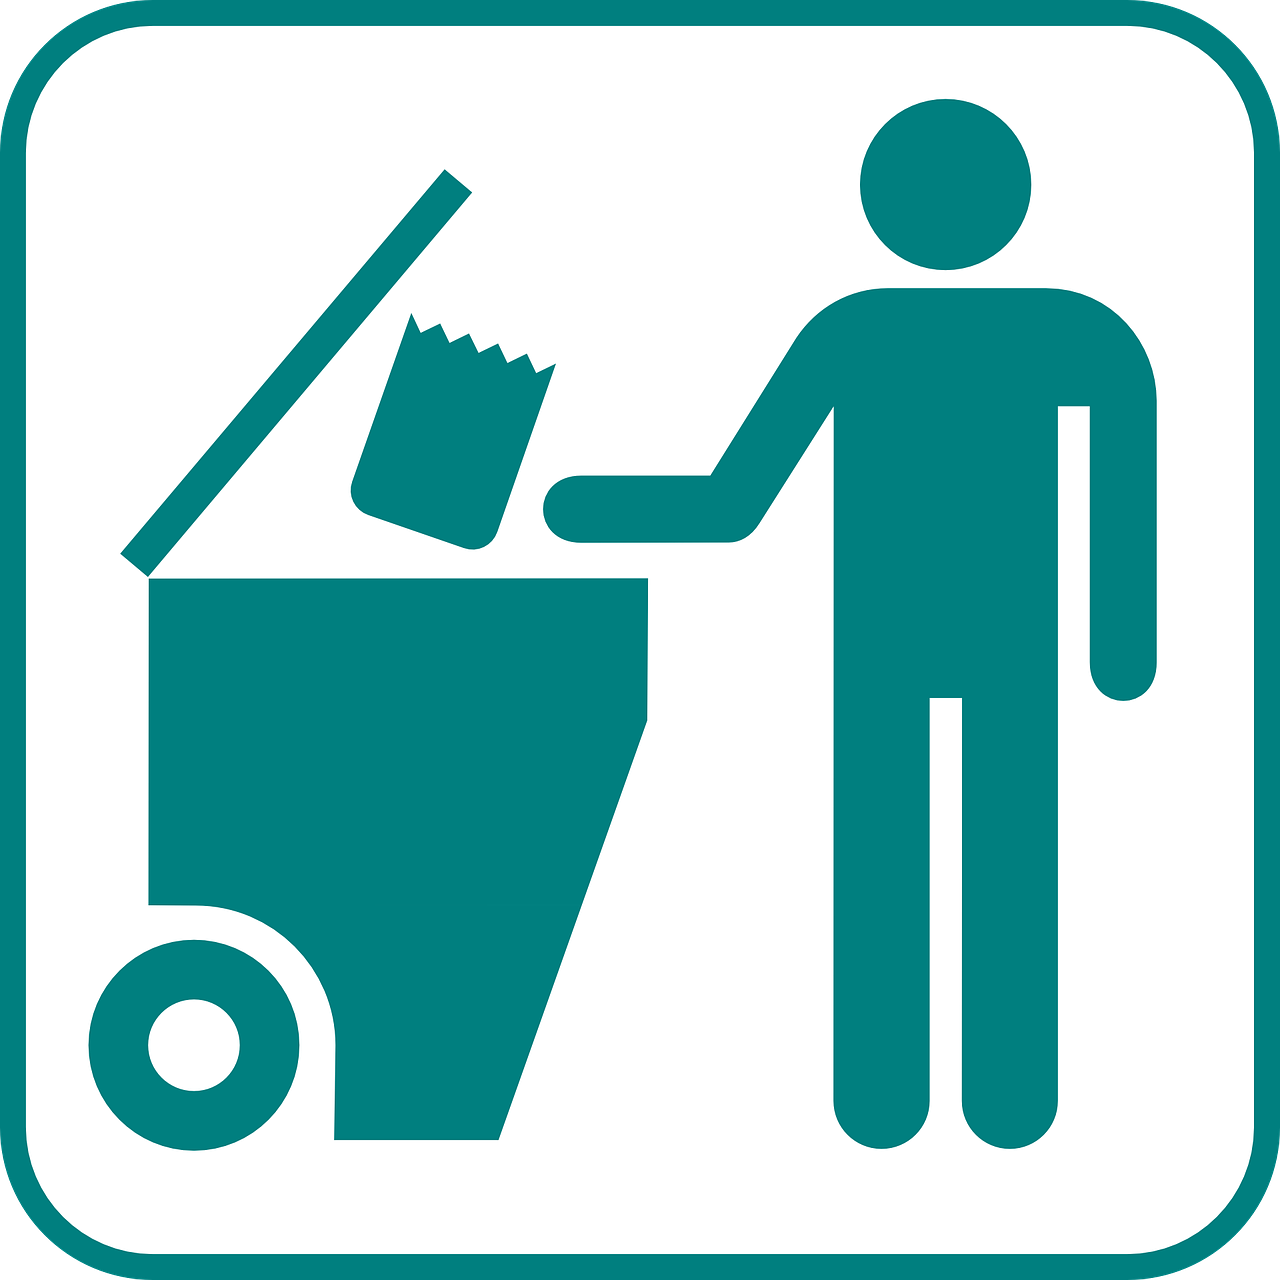 How To Reduce Waste In Manufacturing